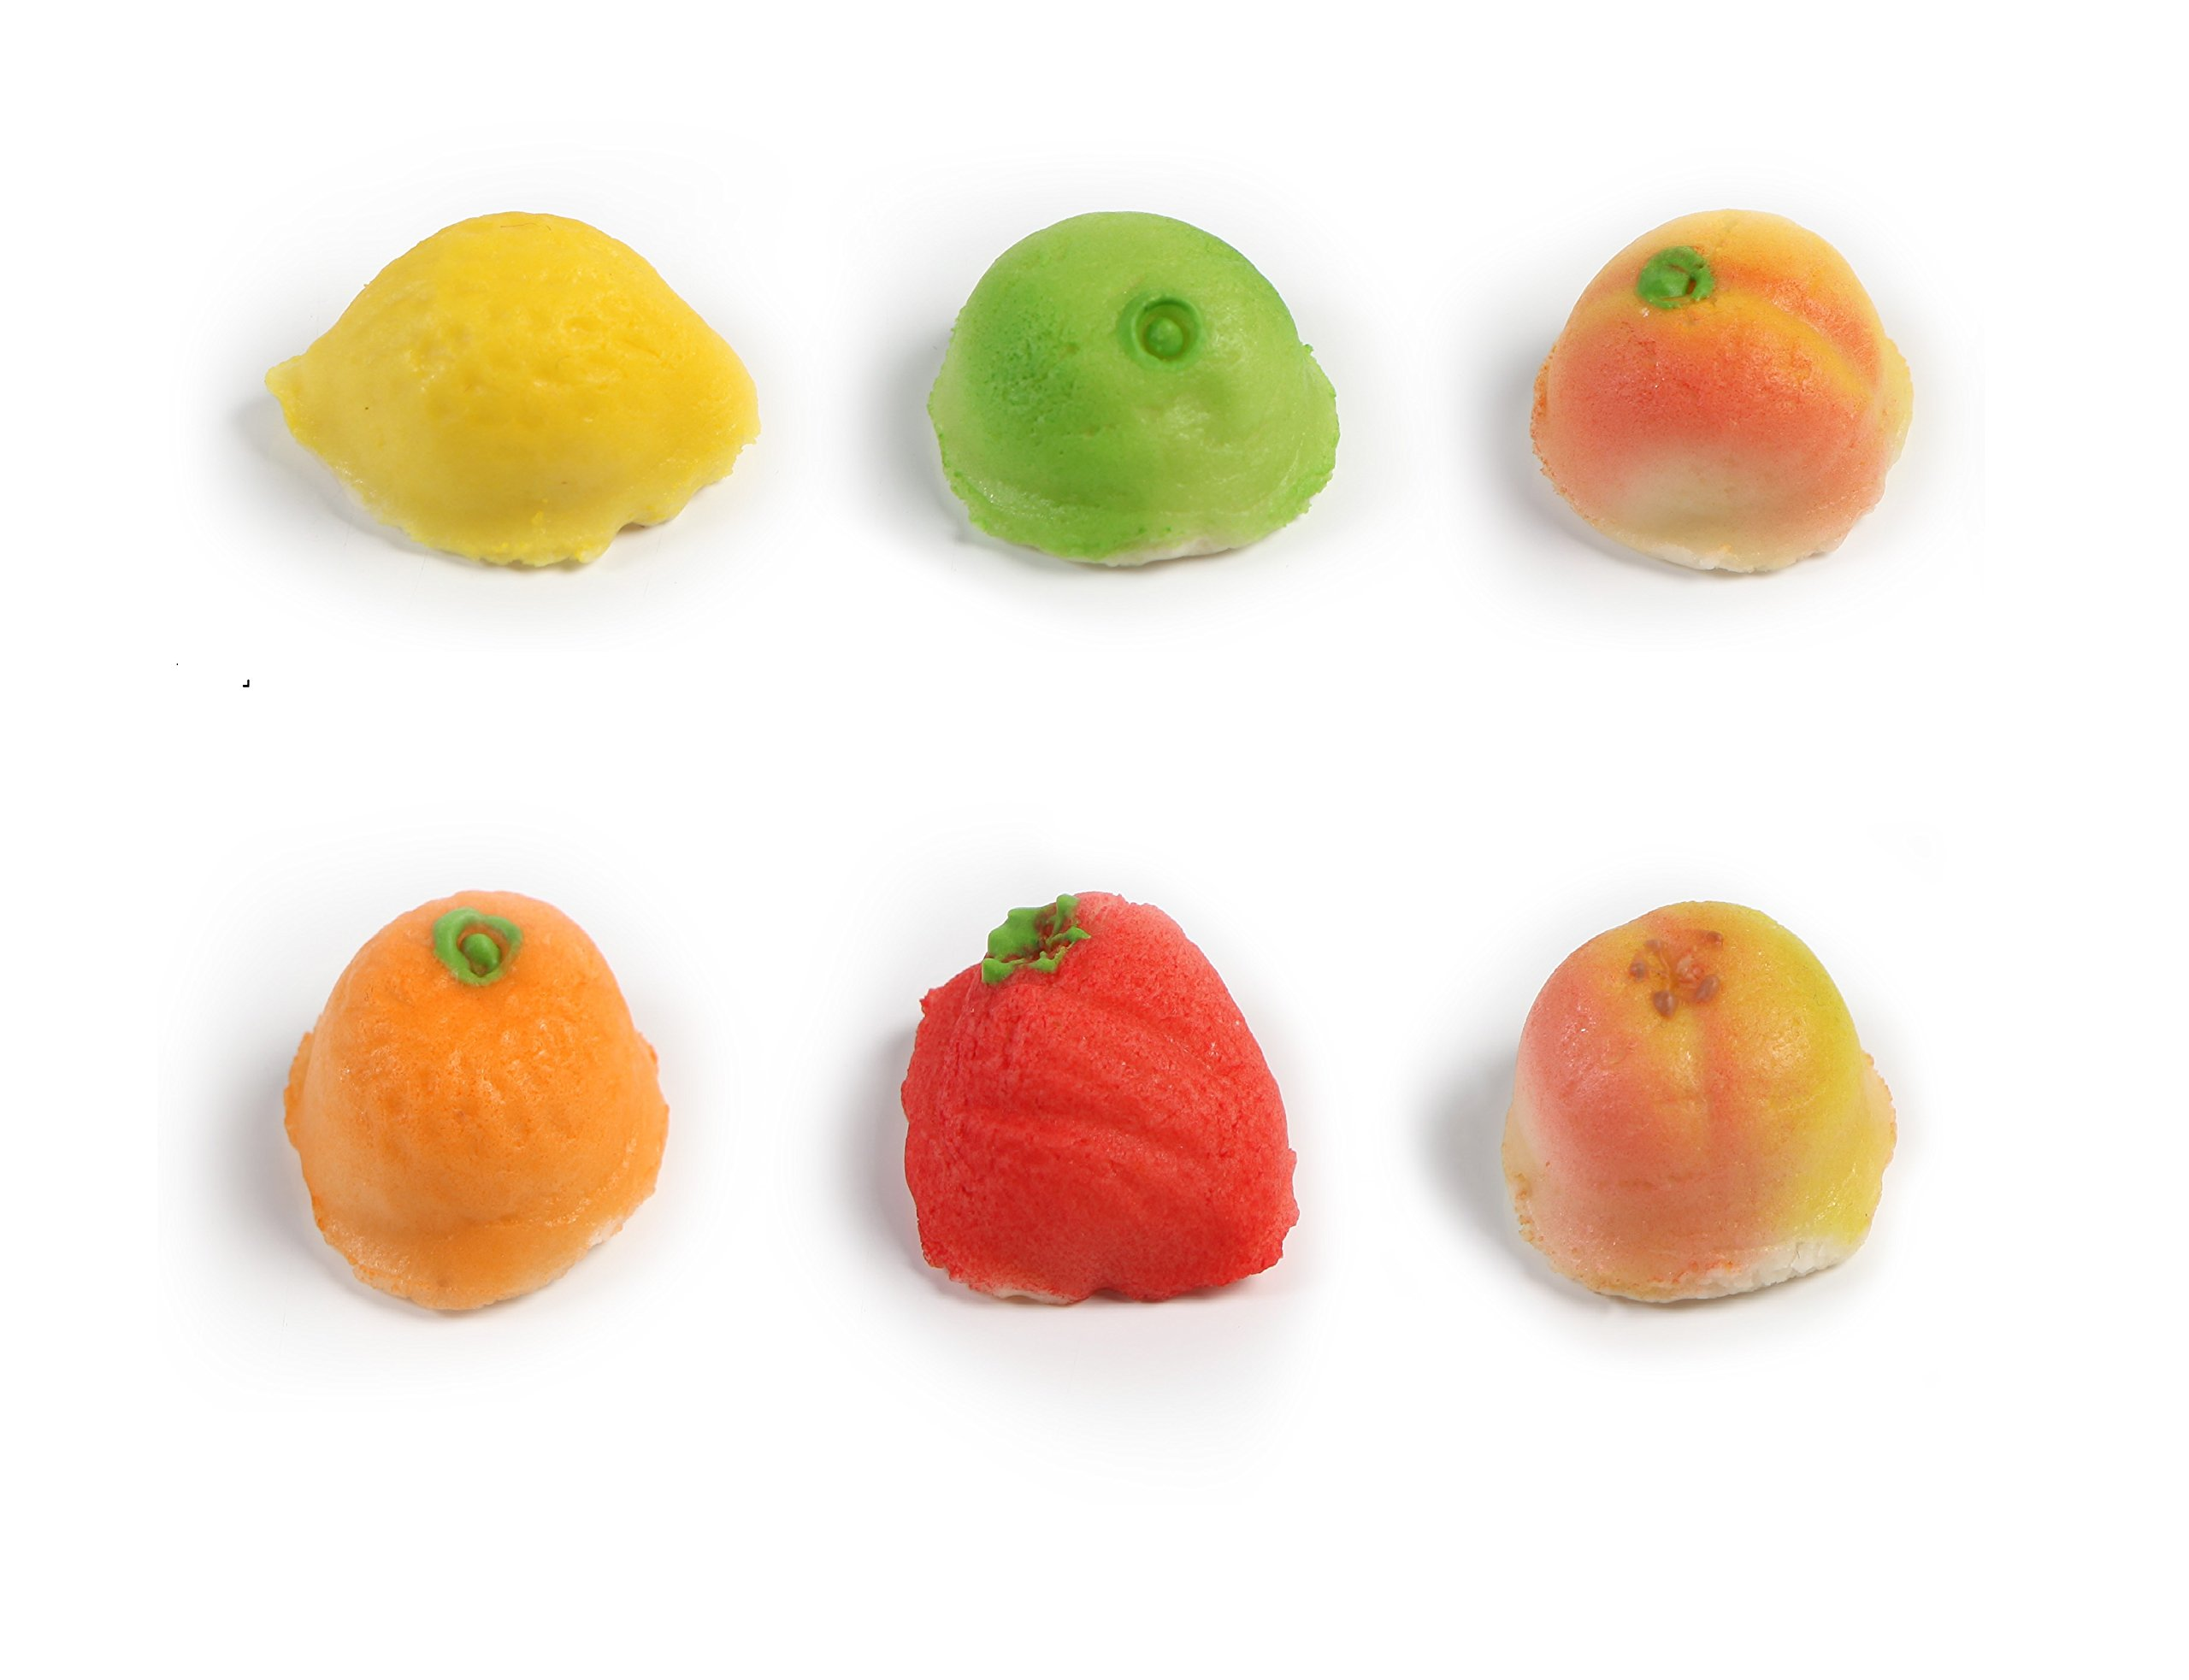 Oh! Nuts® Marzipan Candy Fruits, Holiday Gourmet Marzipans Tray in an Elegant Gift Box, Unique Basket for Women & Men Alike, Send it For Thanksgiving, Christmas Gourmet Food Idea (54 Piece) by Oh! Nuts® (Image #4)